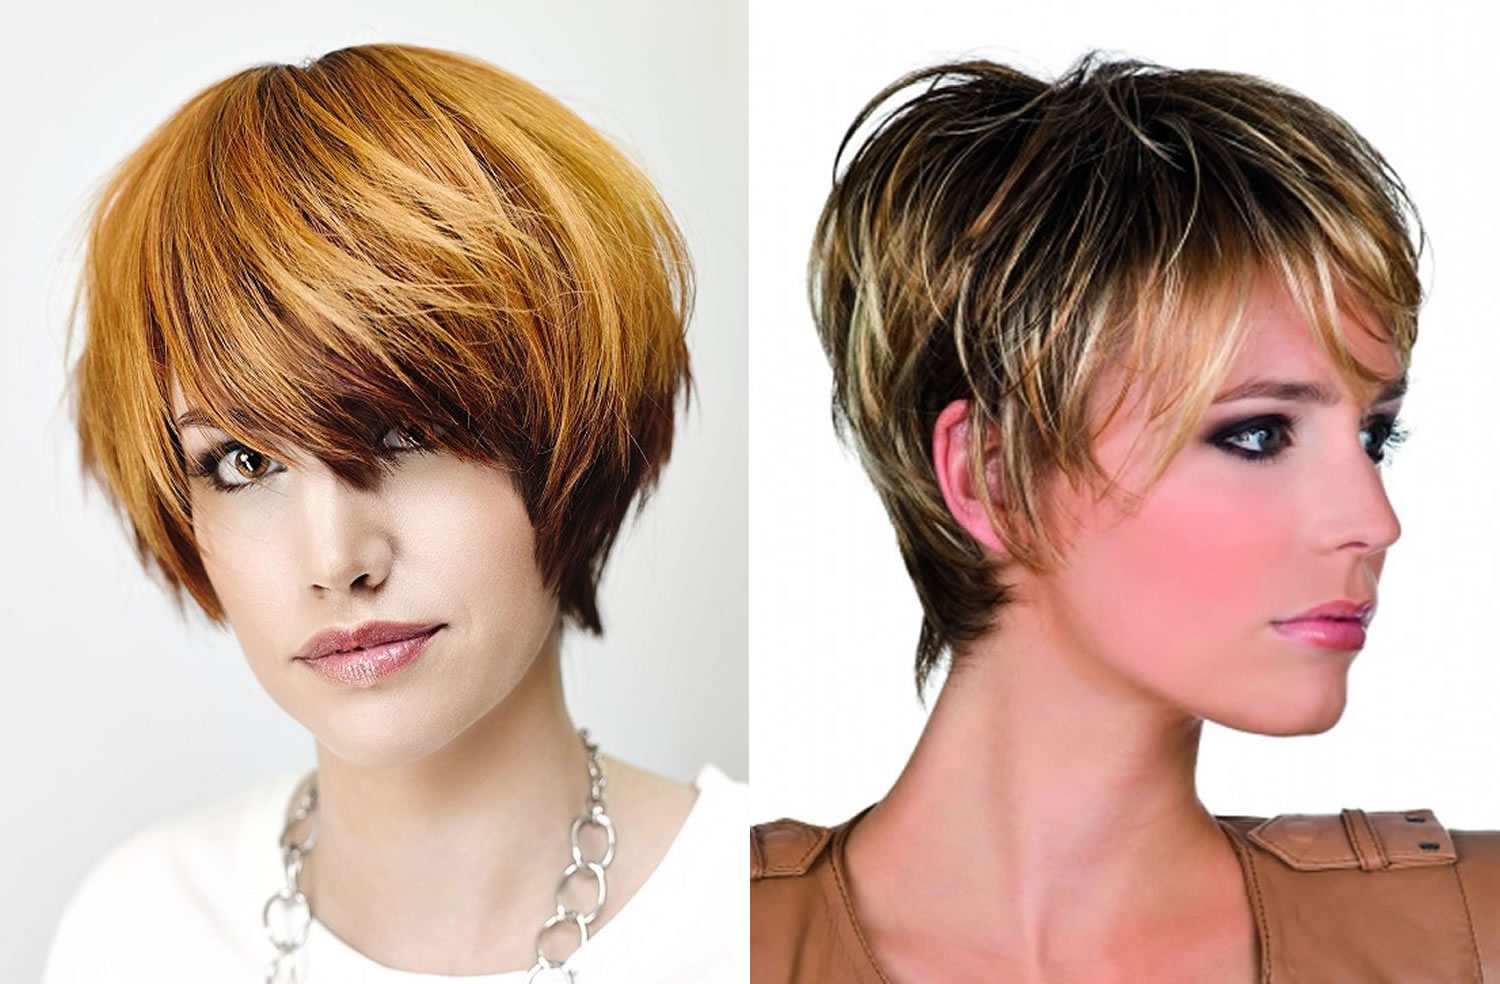 Short Haircuts For Women 2018 Are The Base Of Short Choppy